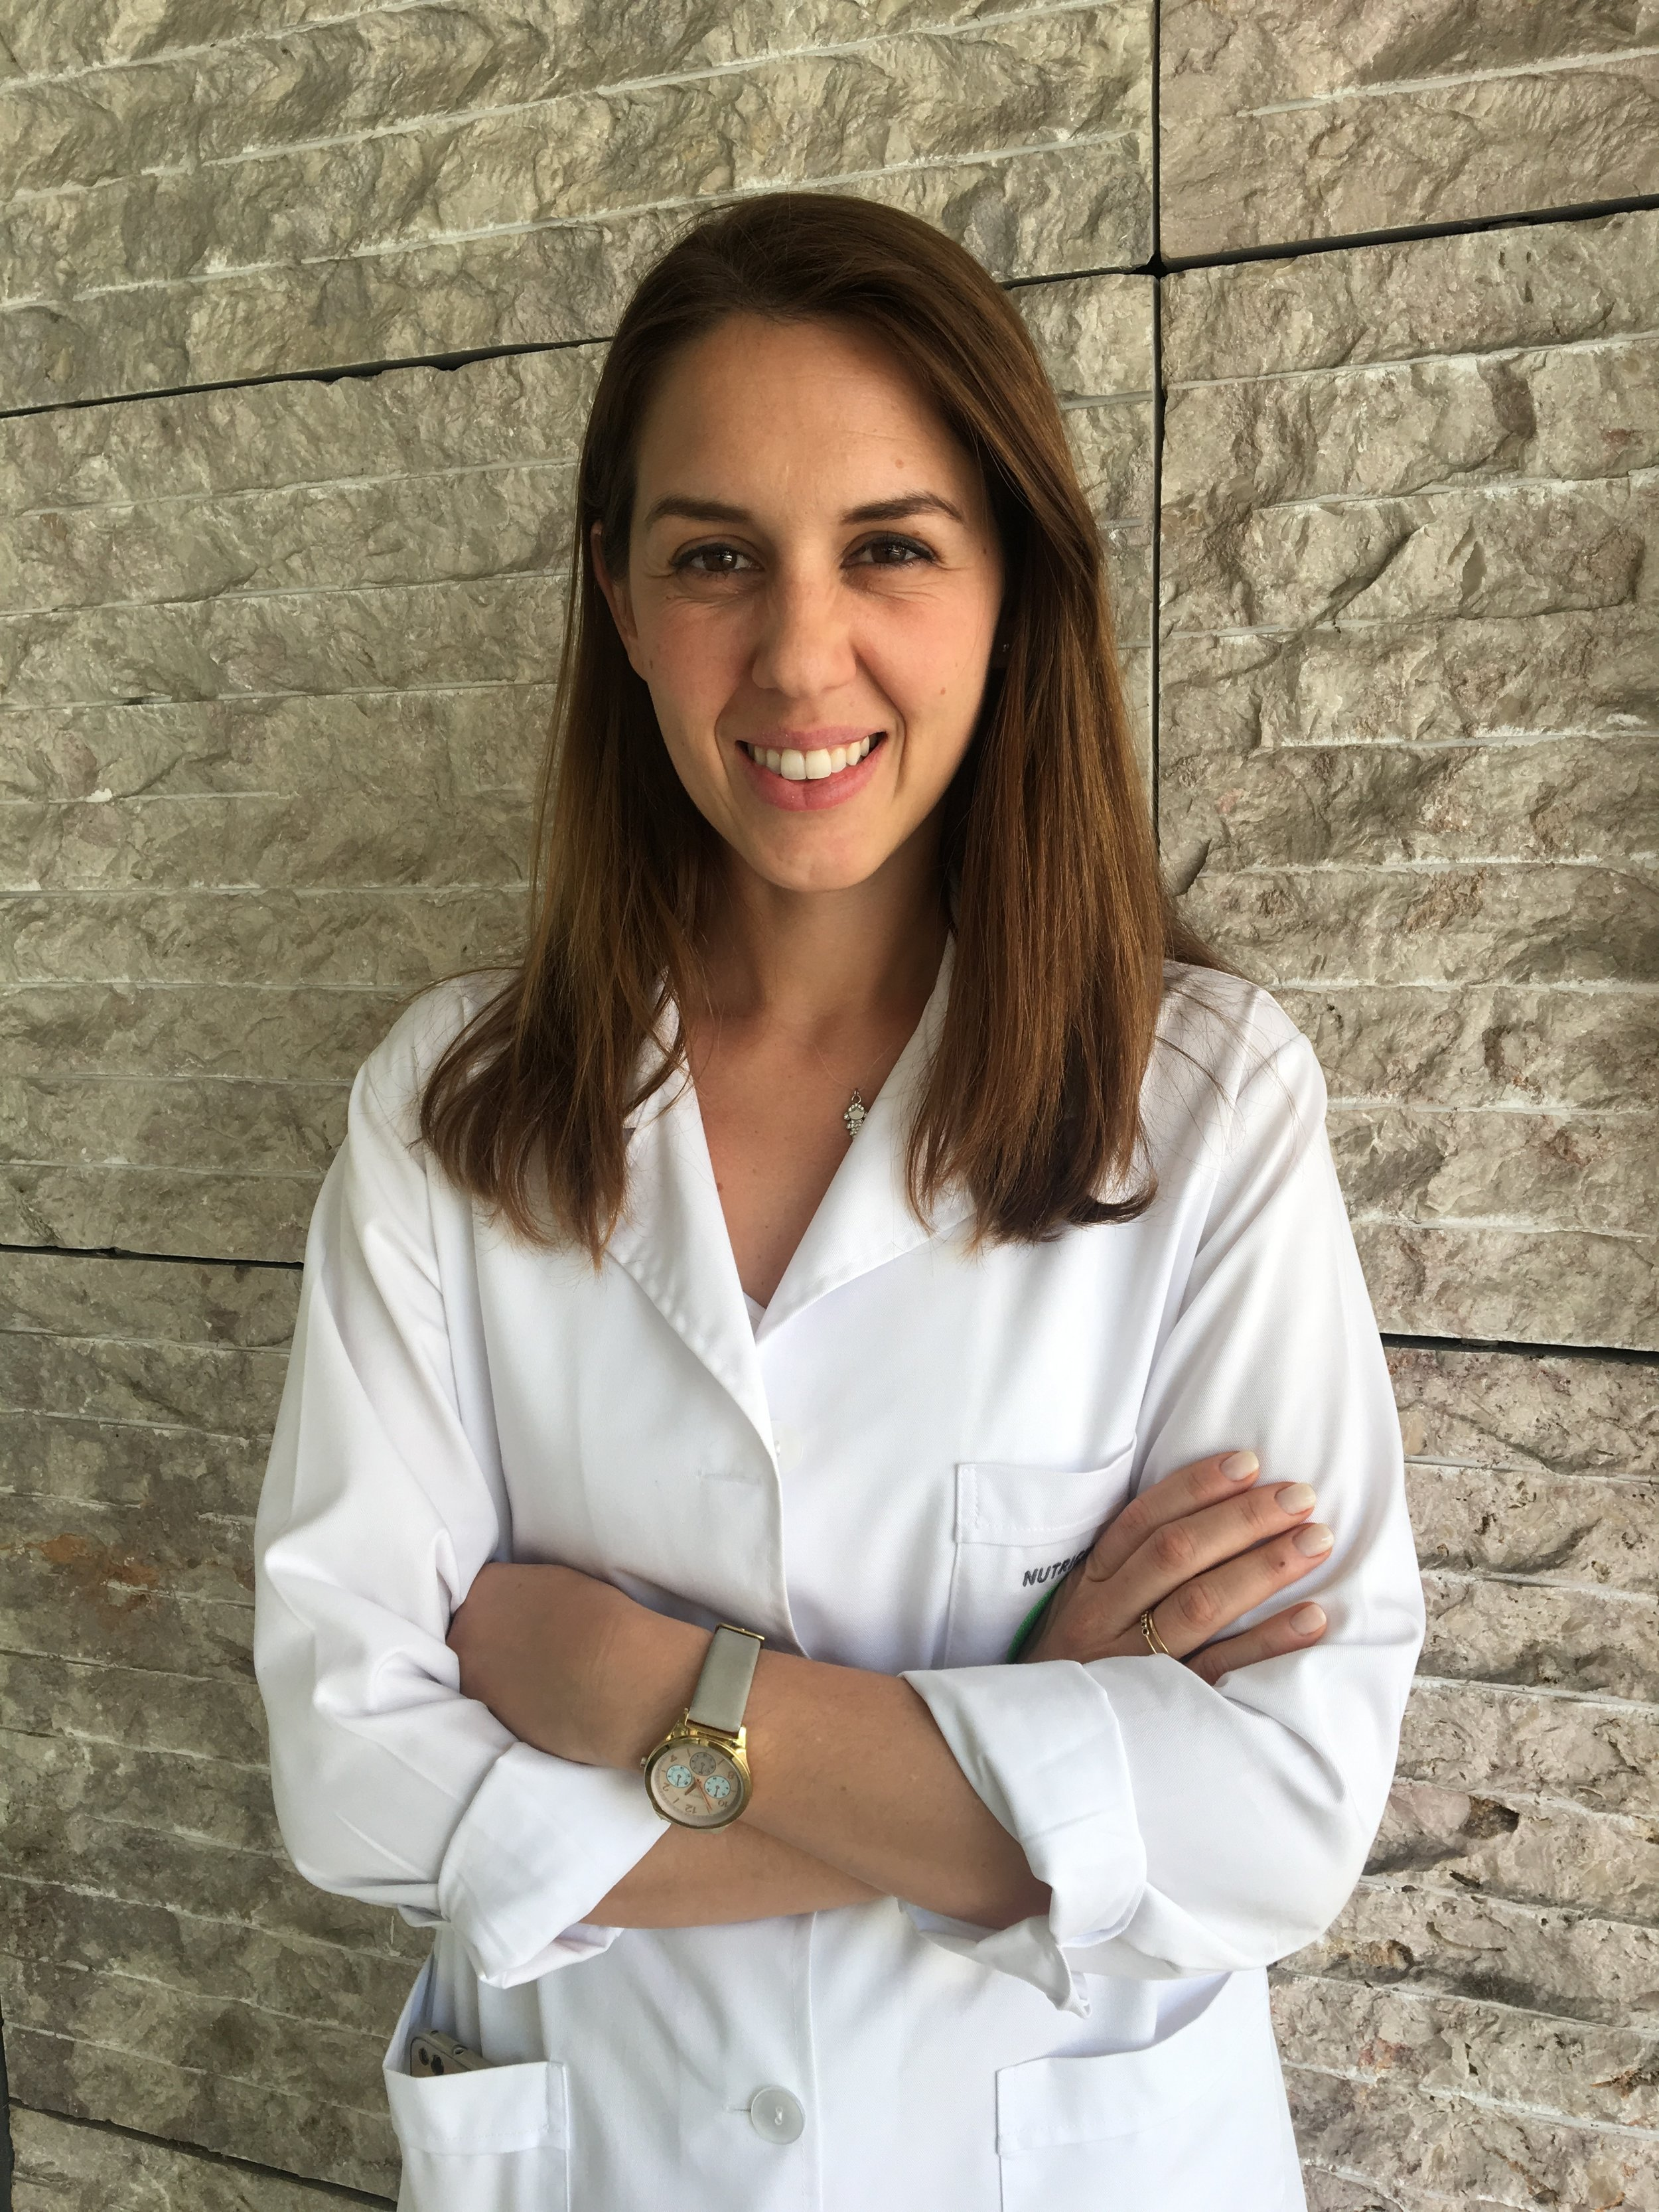 CAROLiNA FERNANDES - NUTRITIONIST   Master Degree in Science Nutrition  Order of Nutritionist Member - 0124N  Complementary Education in Functional Nutrition and Eating Disorders.